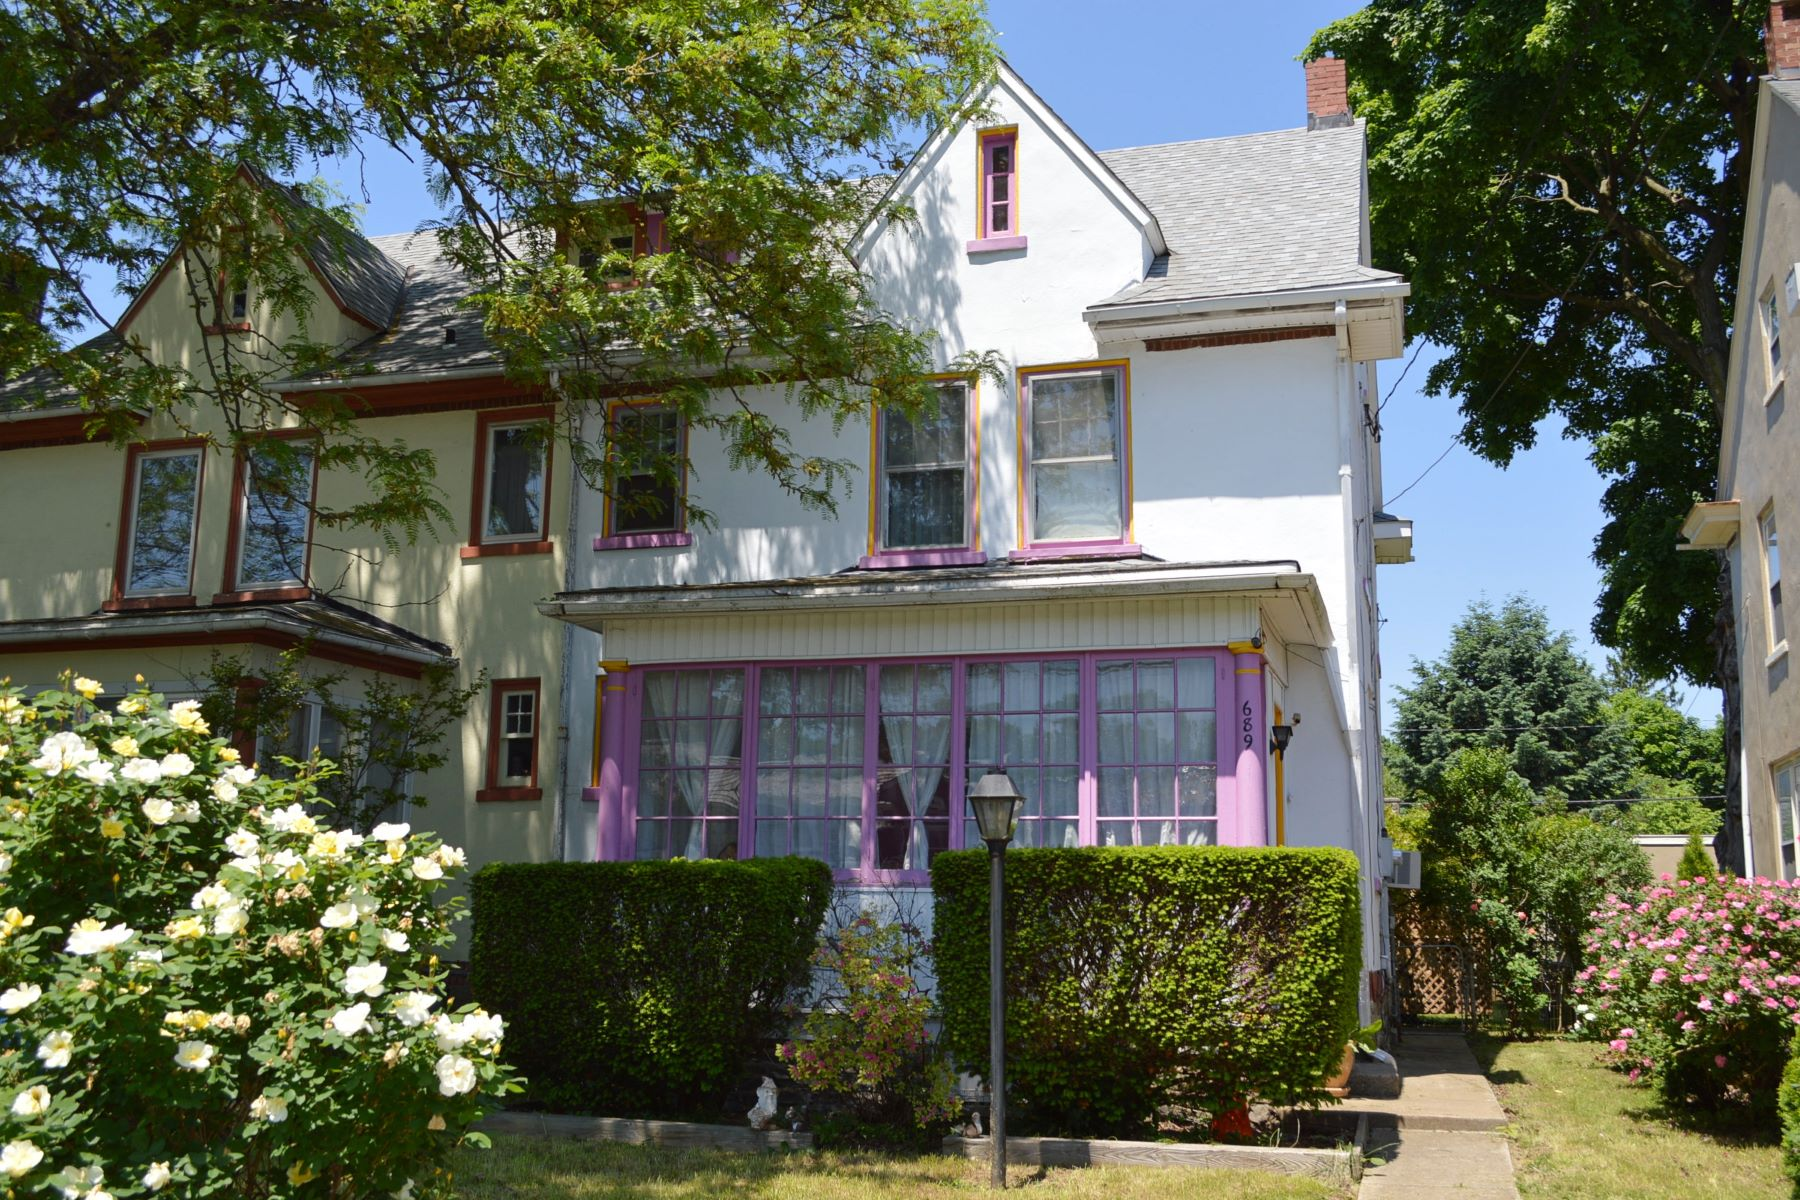 Single Family Home for Sale at 689 New Holland Ave 689 New Holland Ave Lancaster, Pennsylvania 17602 United States